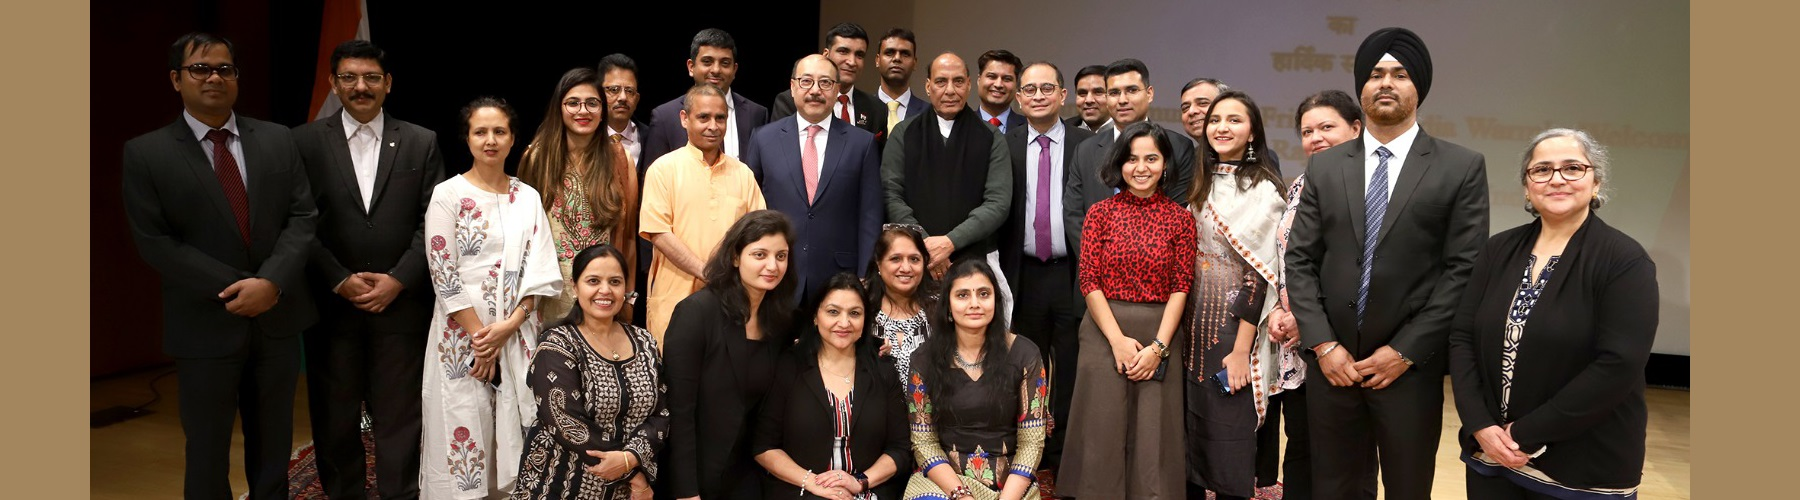 Raksha Mantri Shri Rajnath Singh with the Indian community during a reception organised by Consulate General of India in New York on Tuesday, December 17, 2019